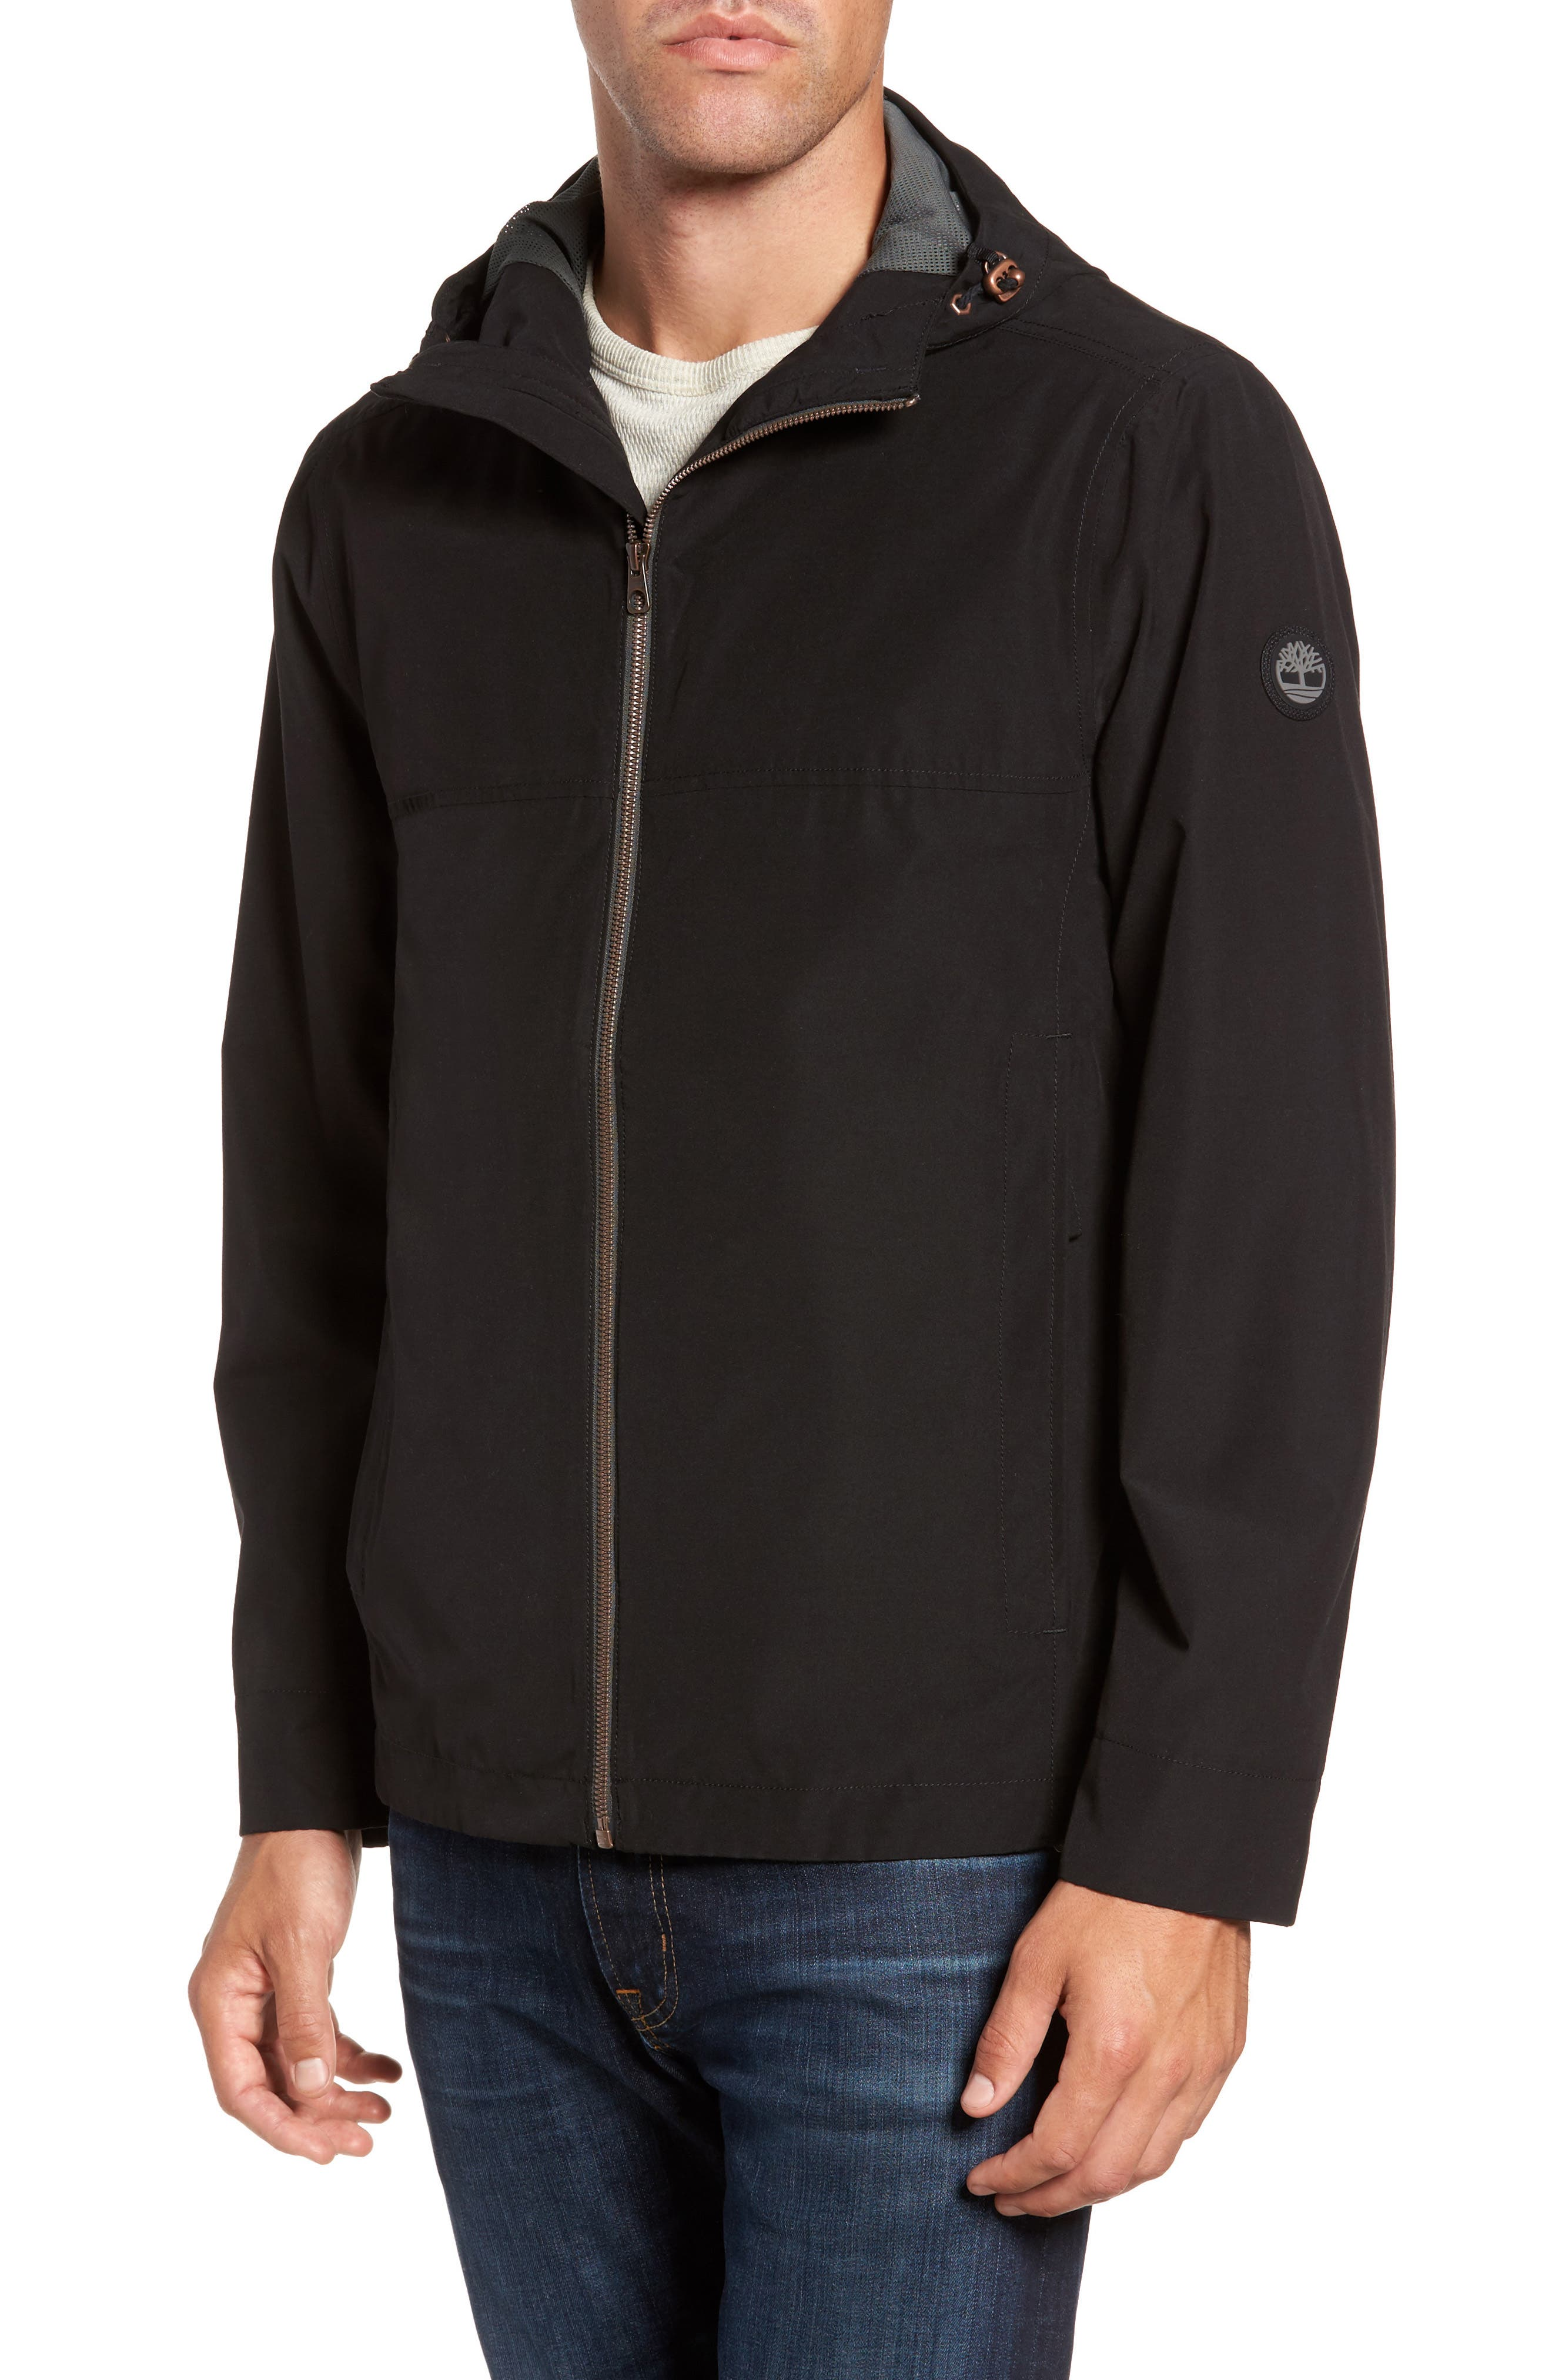 Ragged Mountain Packable Waterproof Jacket,                         Main,                         color, 001